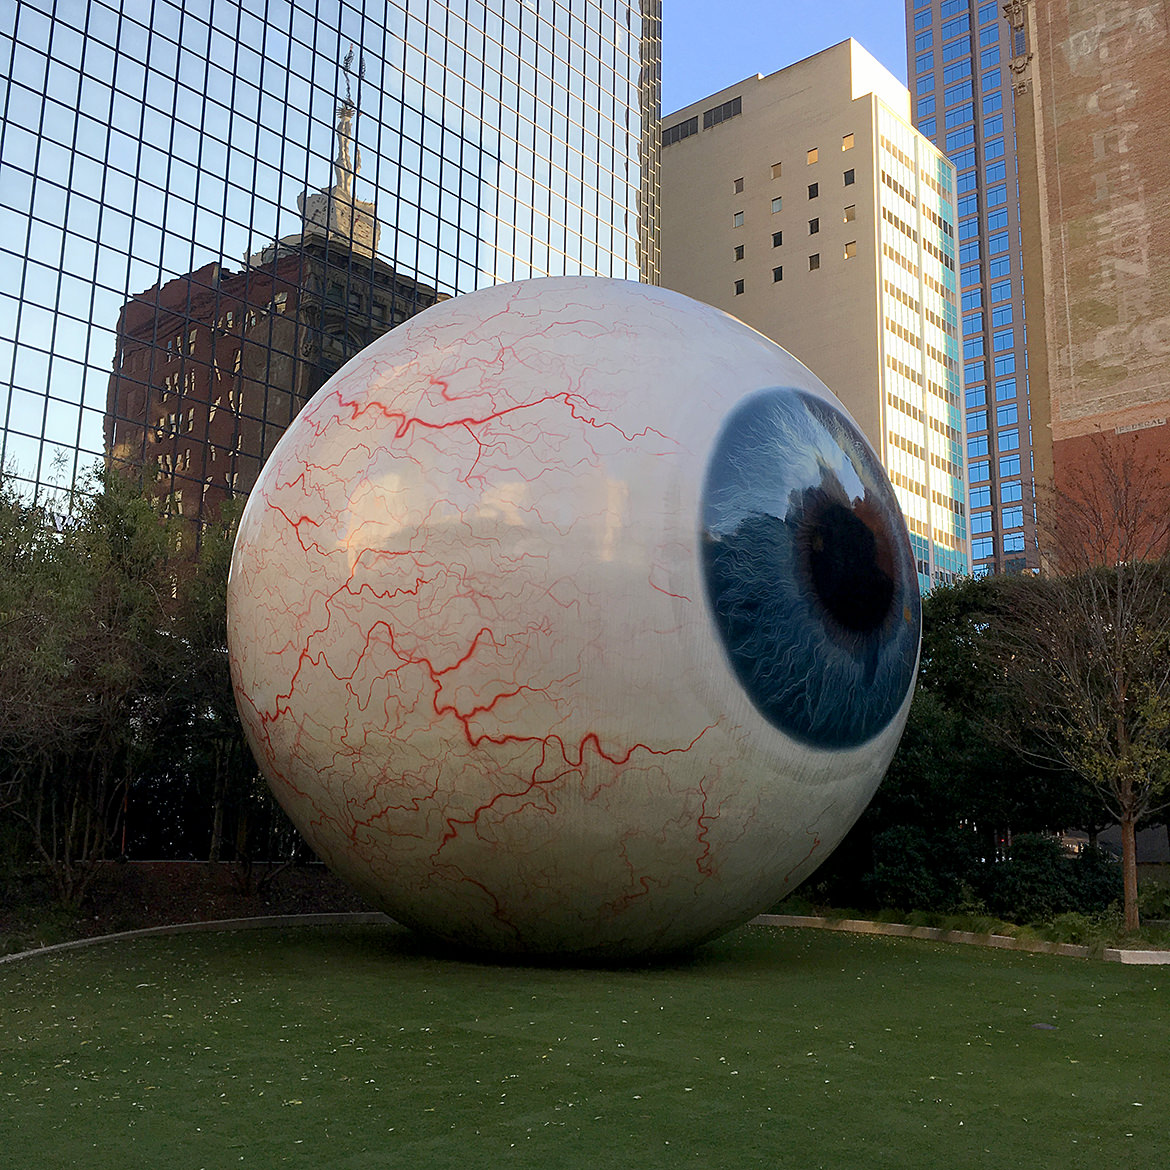 a giant fiberglass sculpture of a human eye